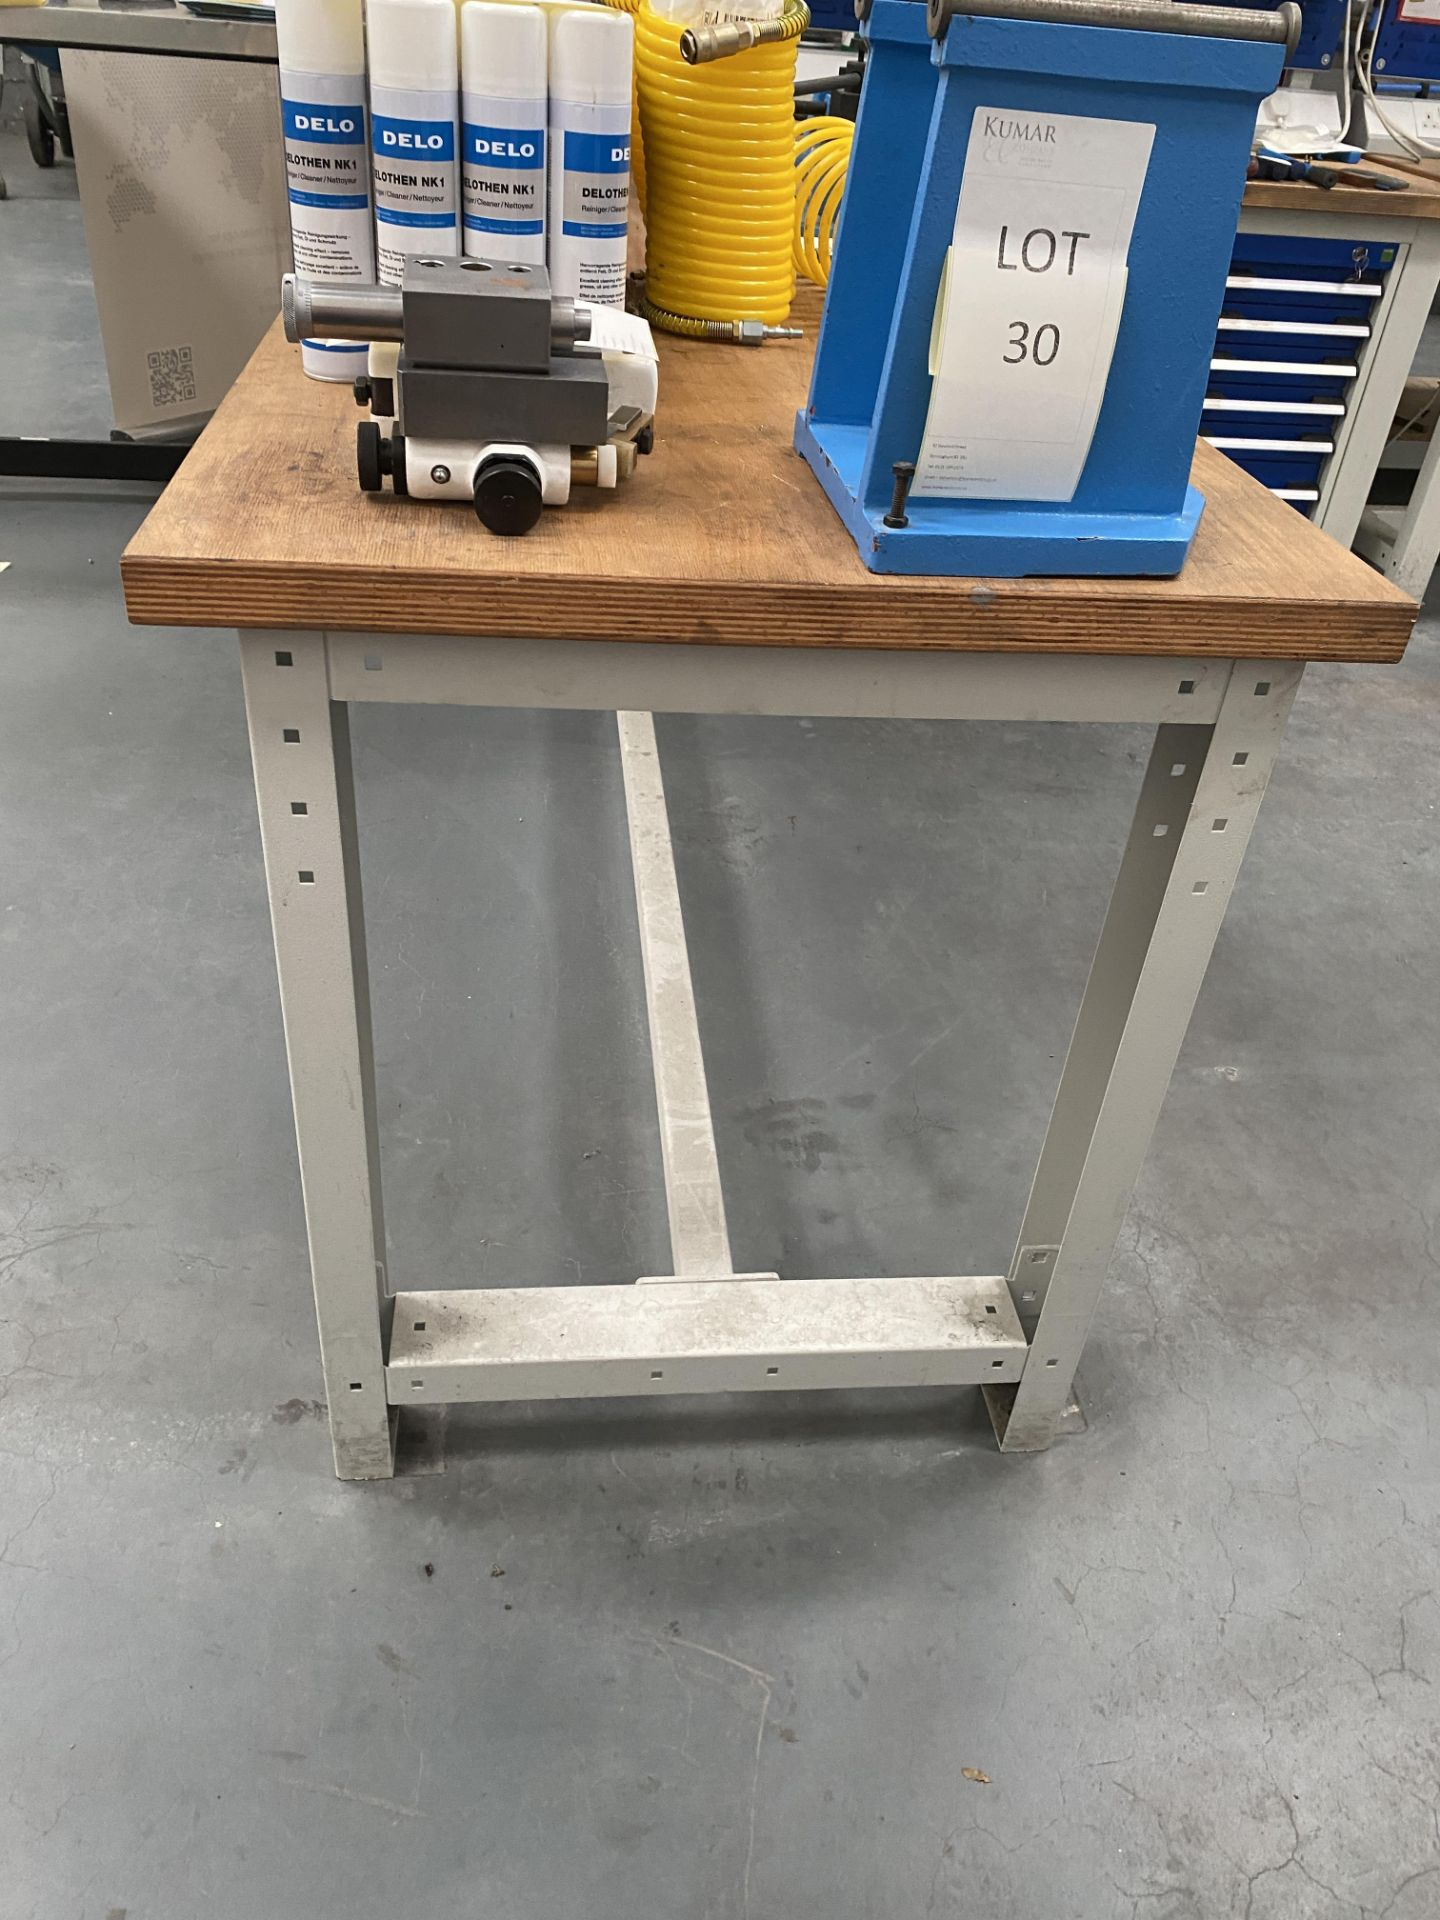 Workbench Size 2m X 0.76m X 0.84m (Does Not Include Contents) - Image 4 of 4